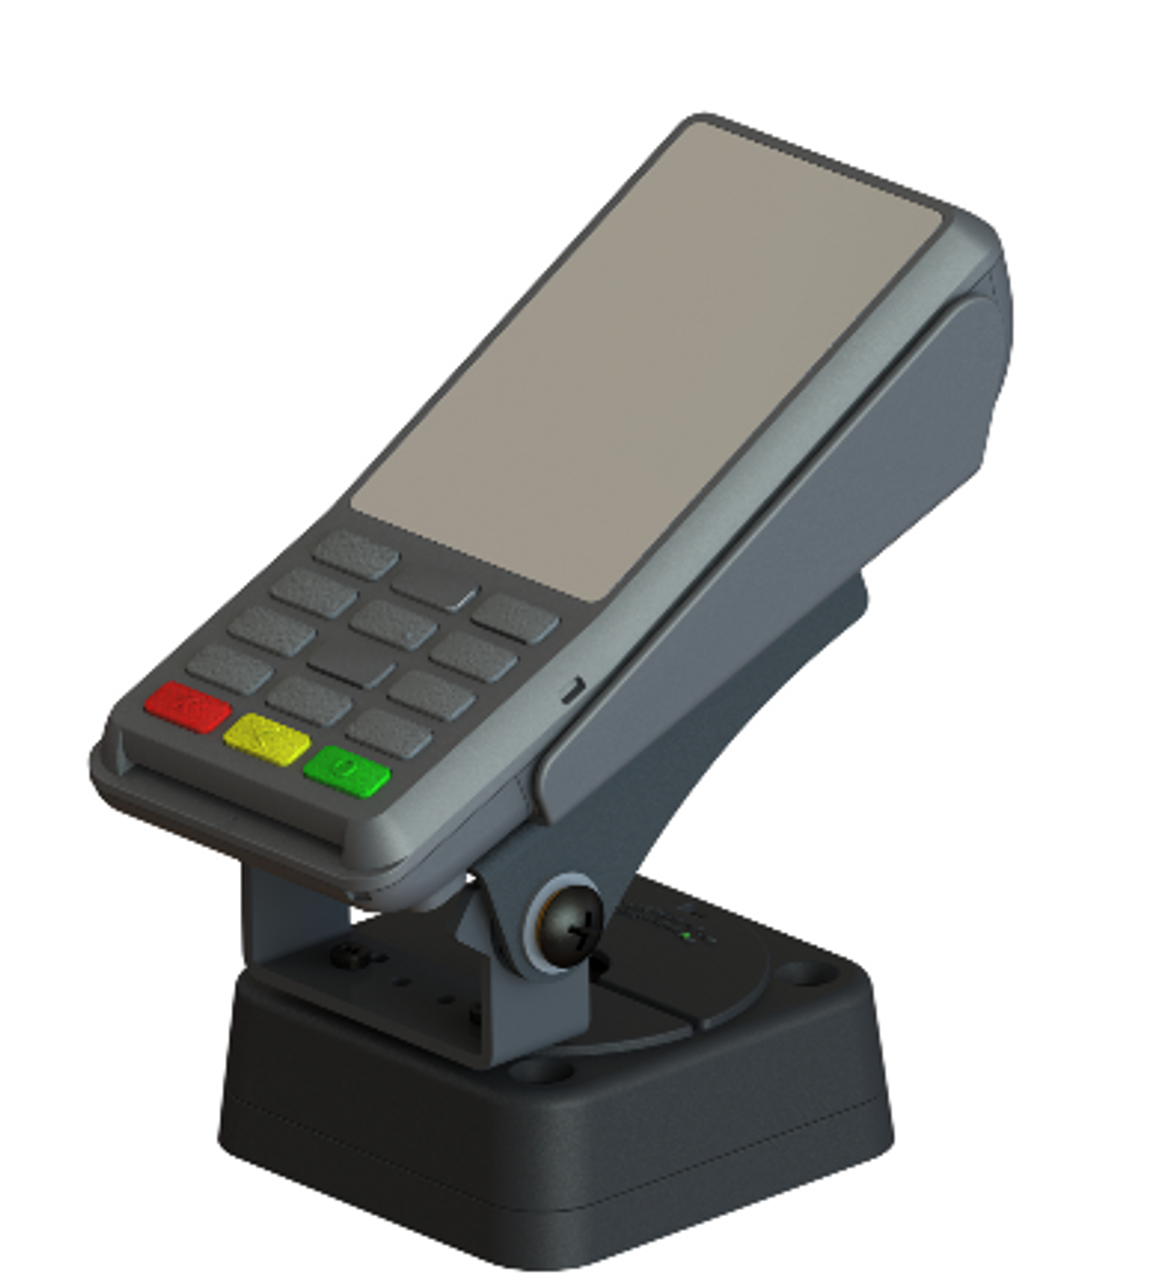 Verifone P200 Low Profile Credit Card Stand by Swivel Stands